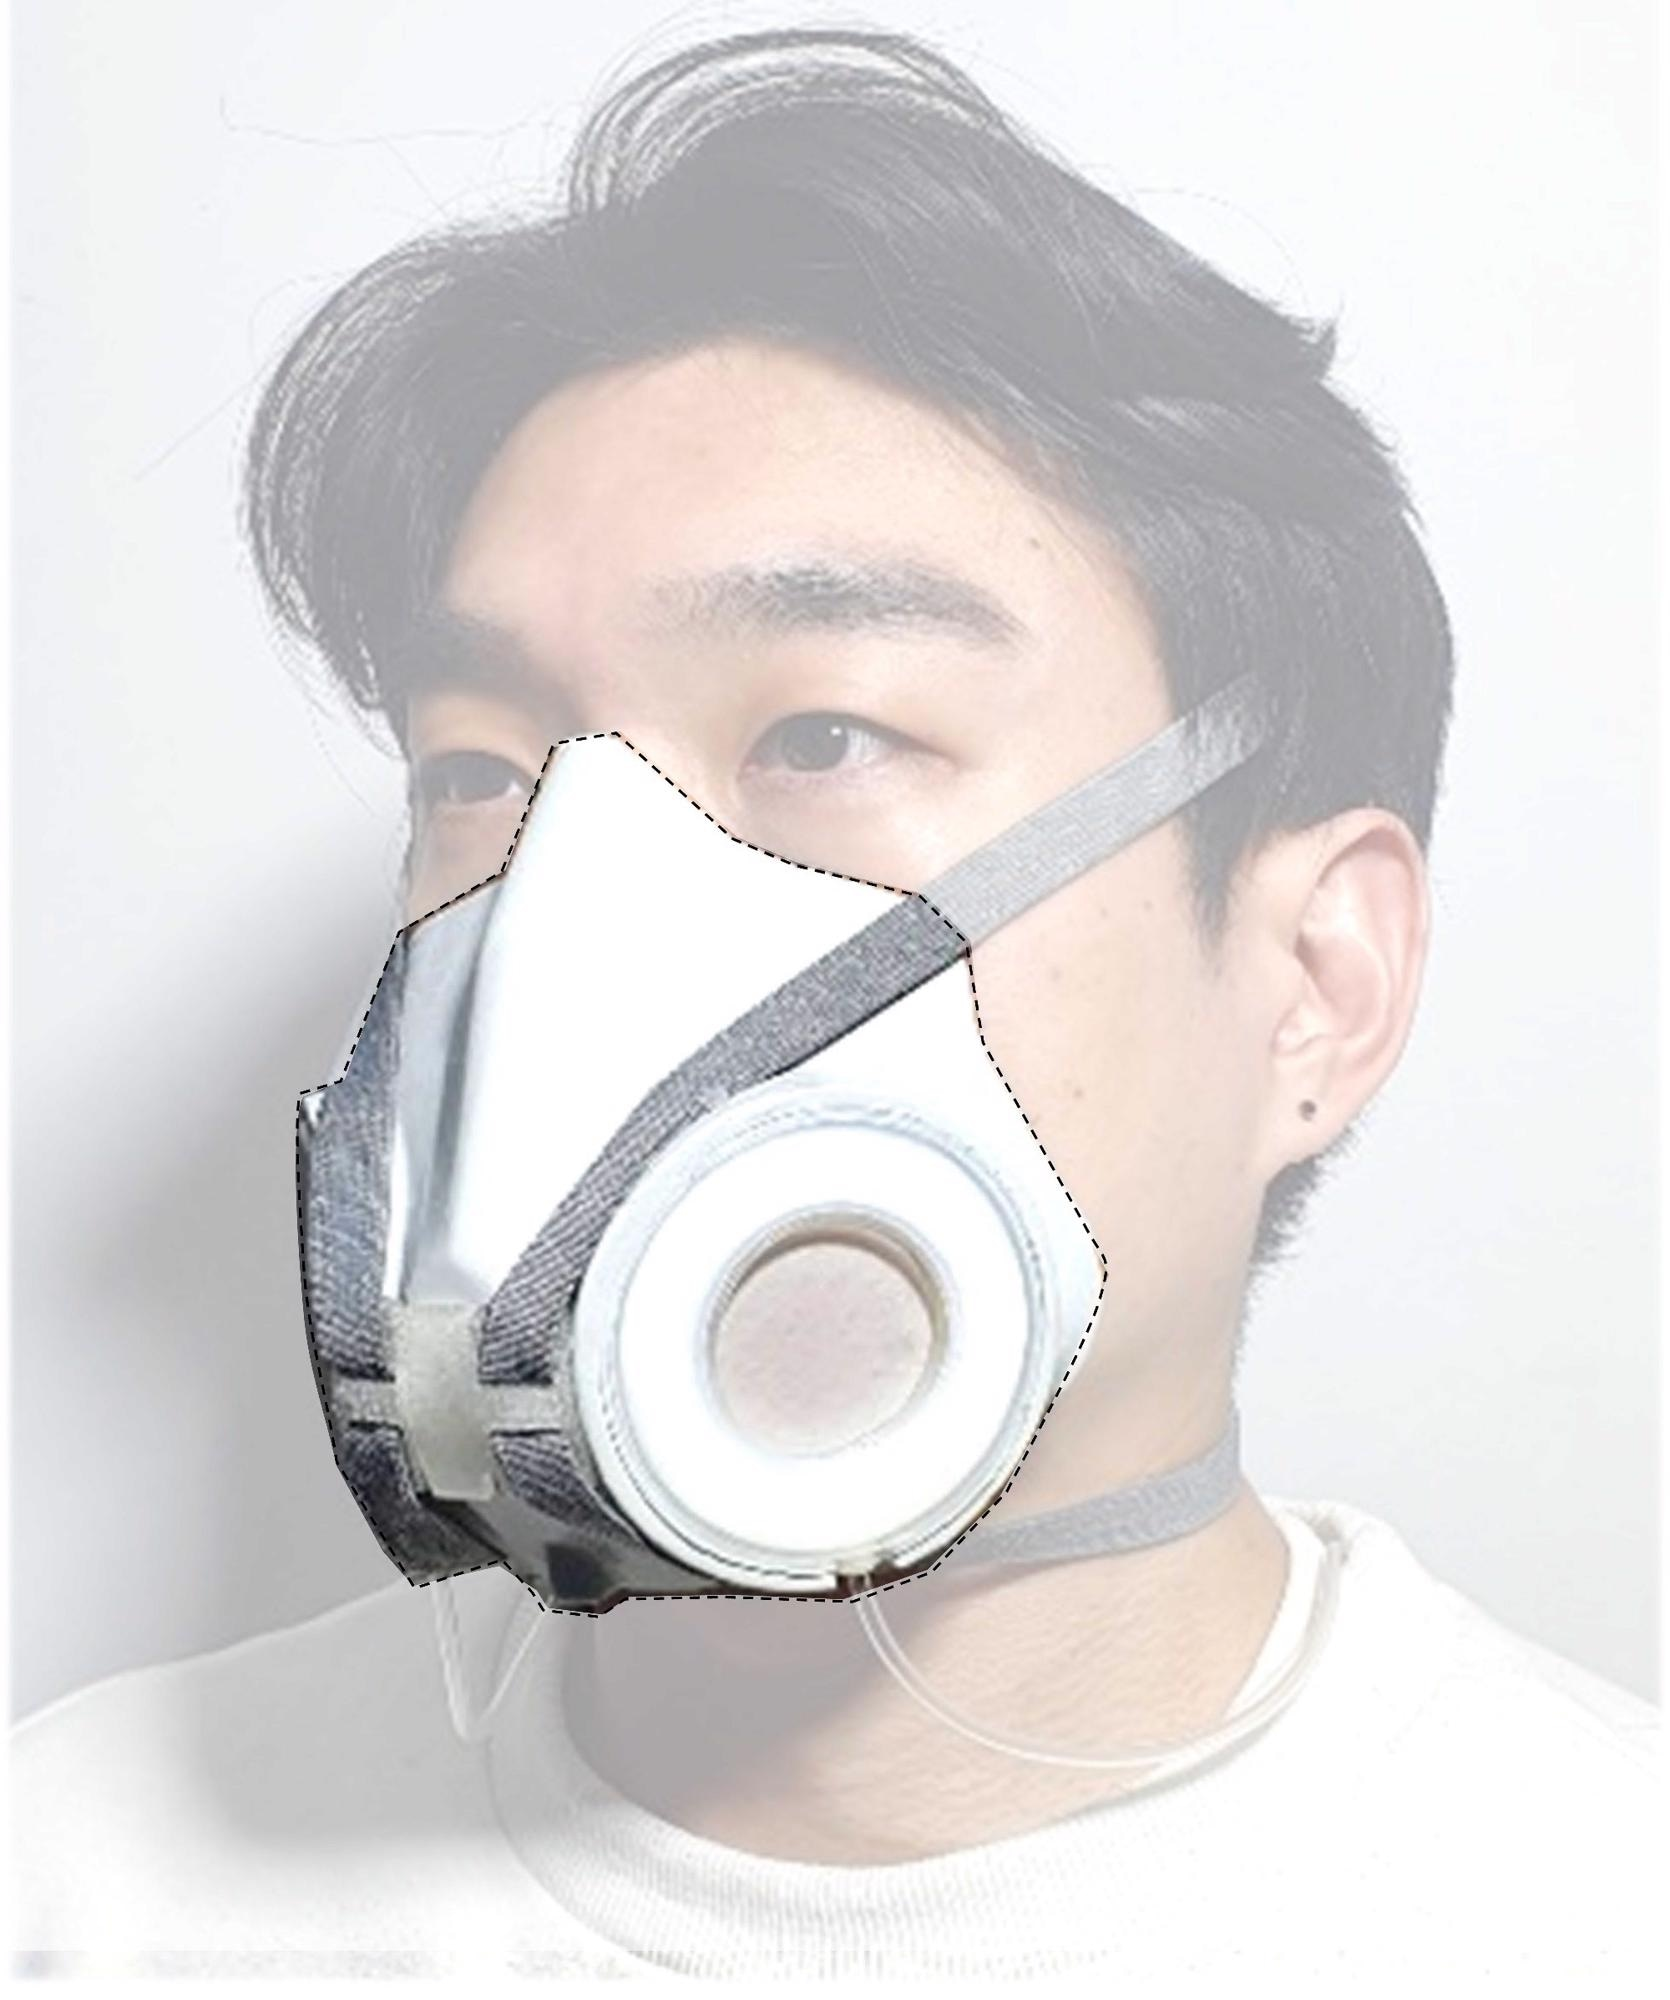 New Dynamic Respirator Modulates its Pore Size in Response to Changing Conditions